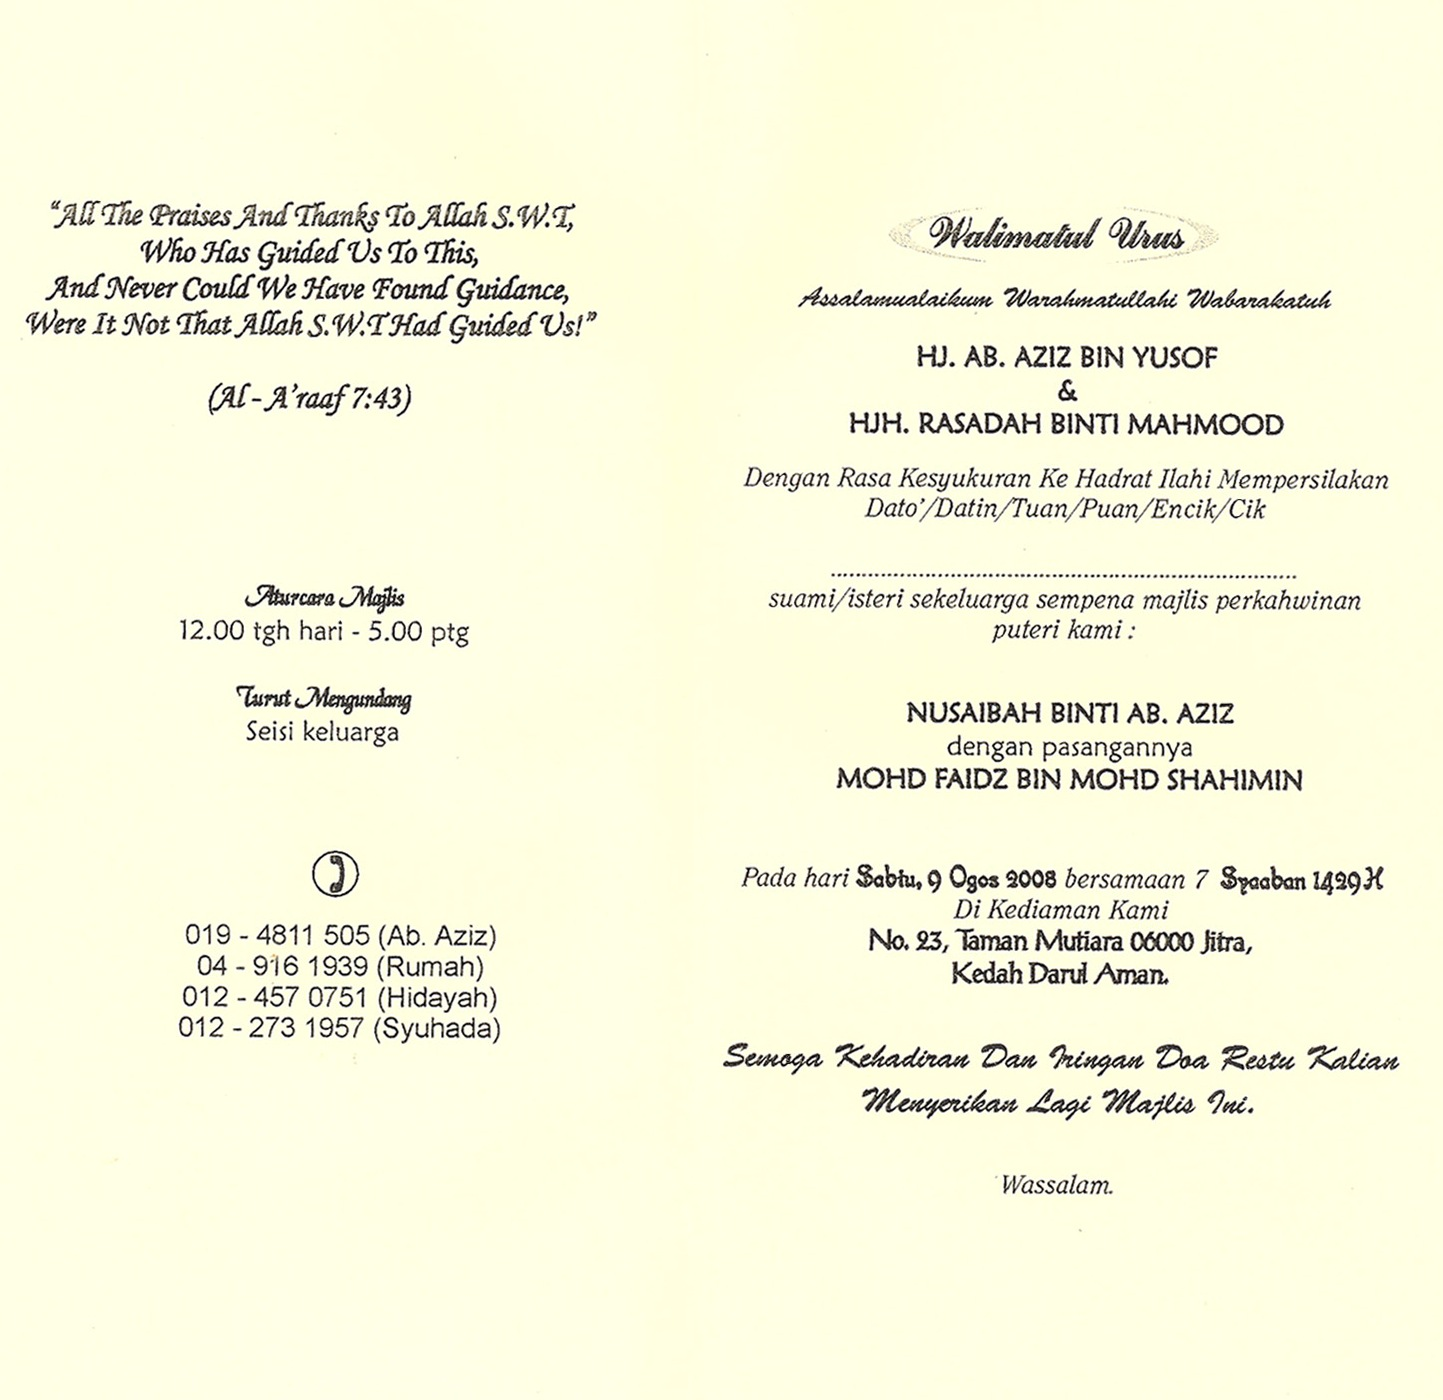 What To Write On Wedding Invitations: Within The Darkness...: The Wedding Card... Nightmare